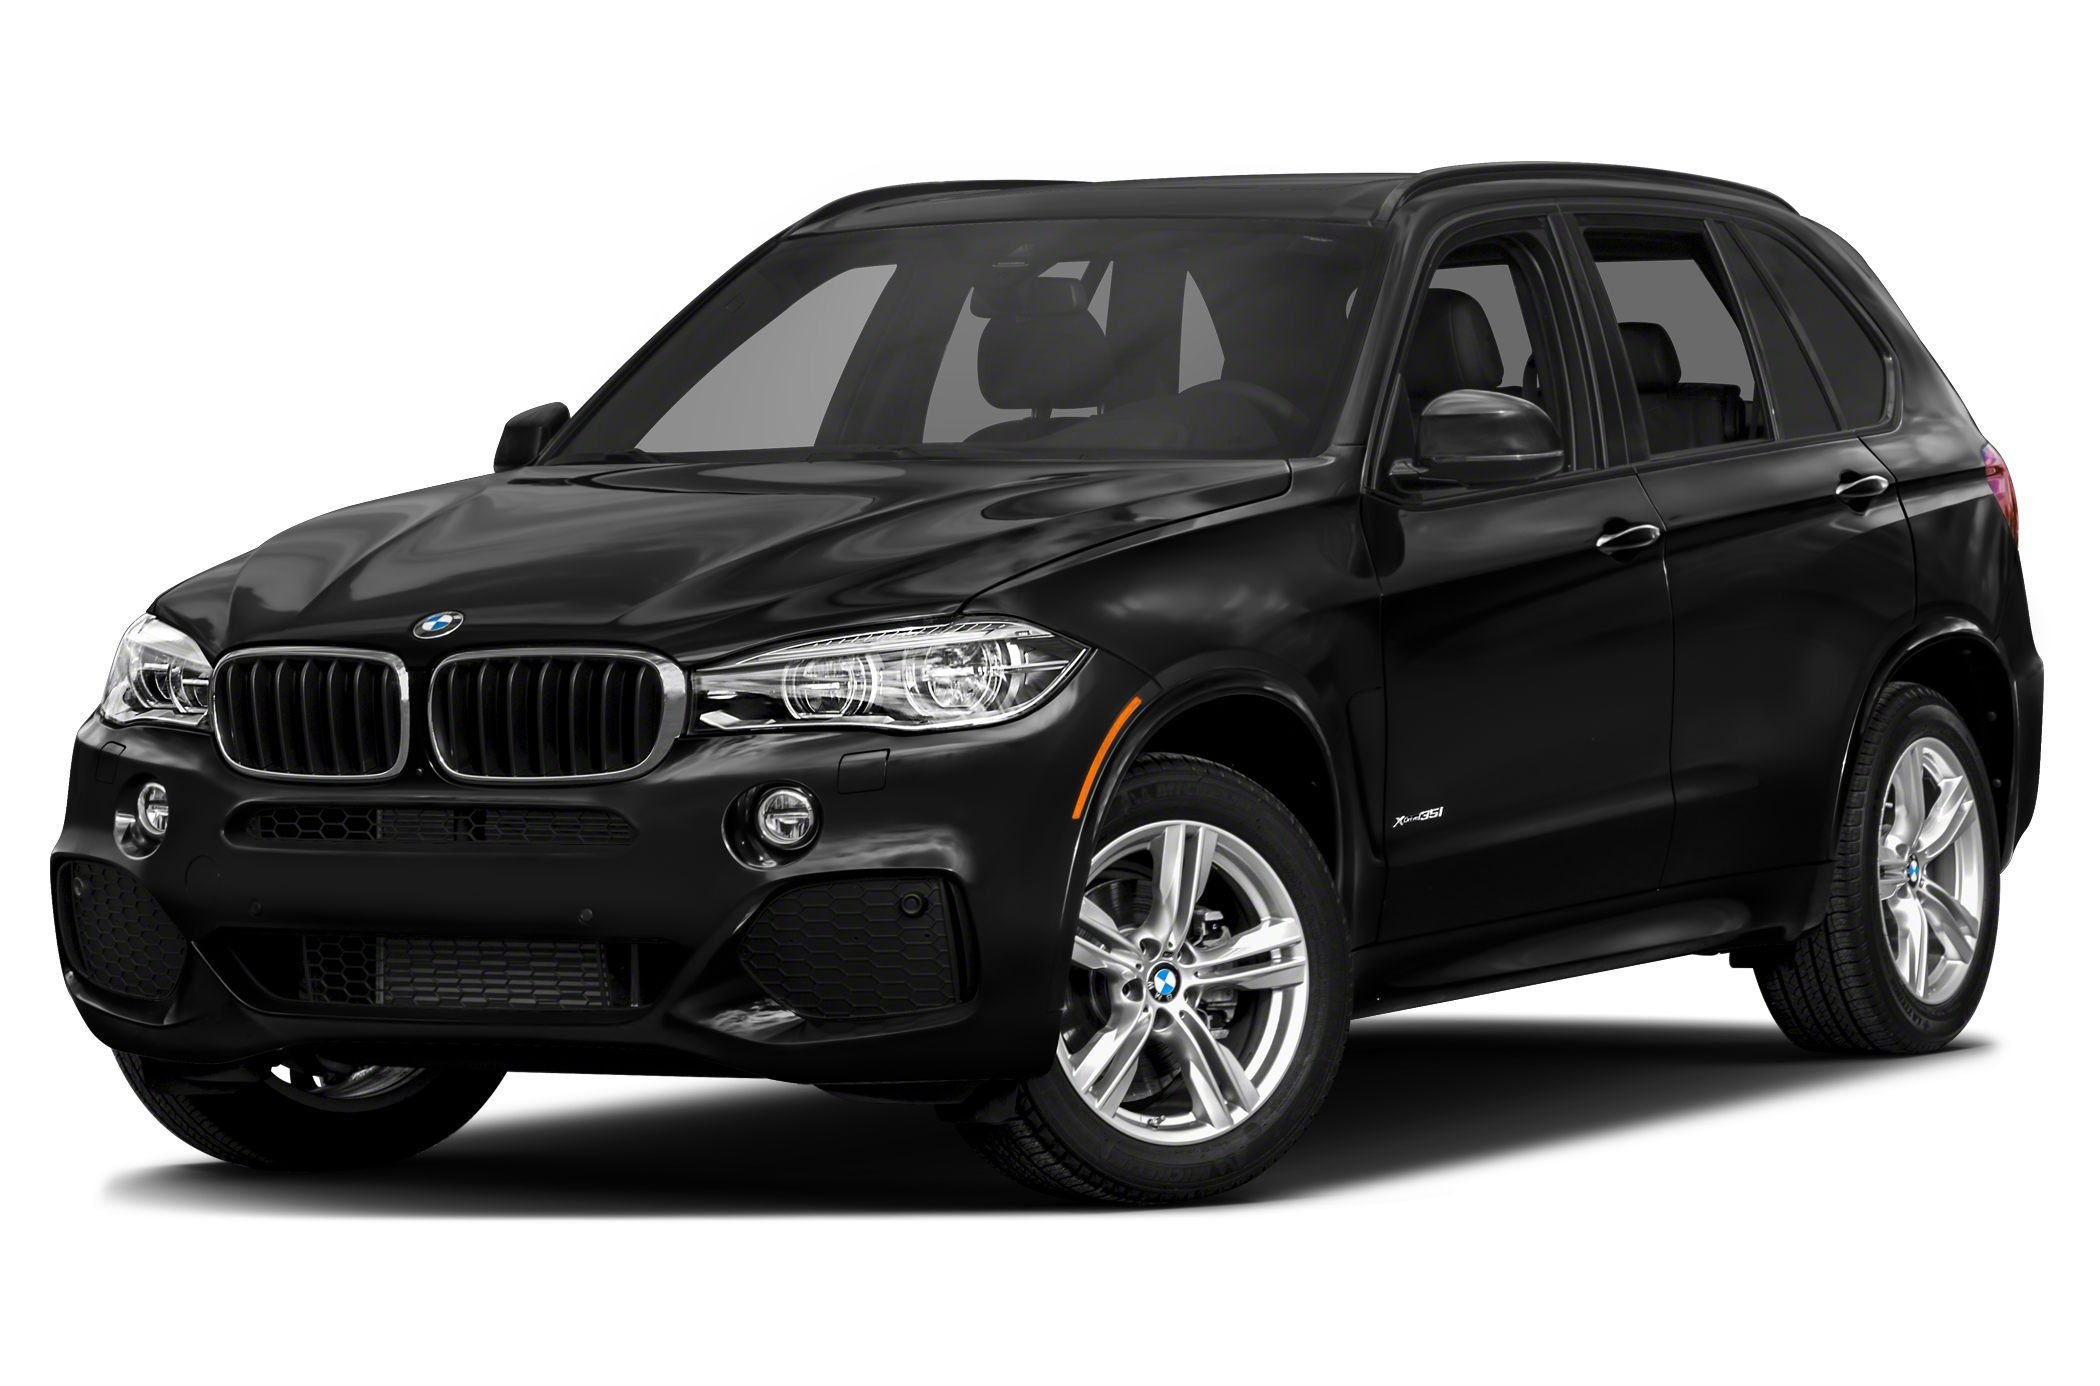 2015 BMW X5 XDrive35d SUV for sale in Los Angeles for $76,475 with 0 miles